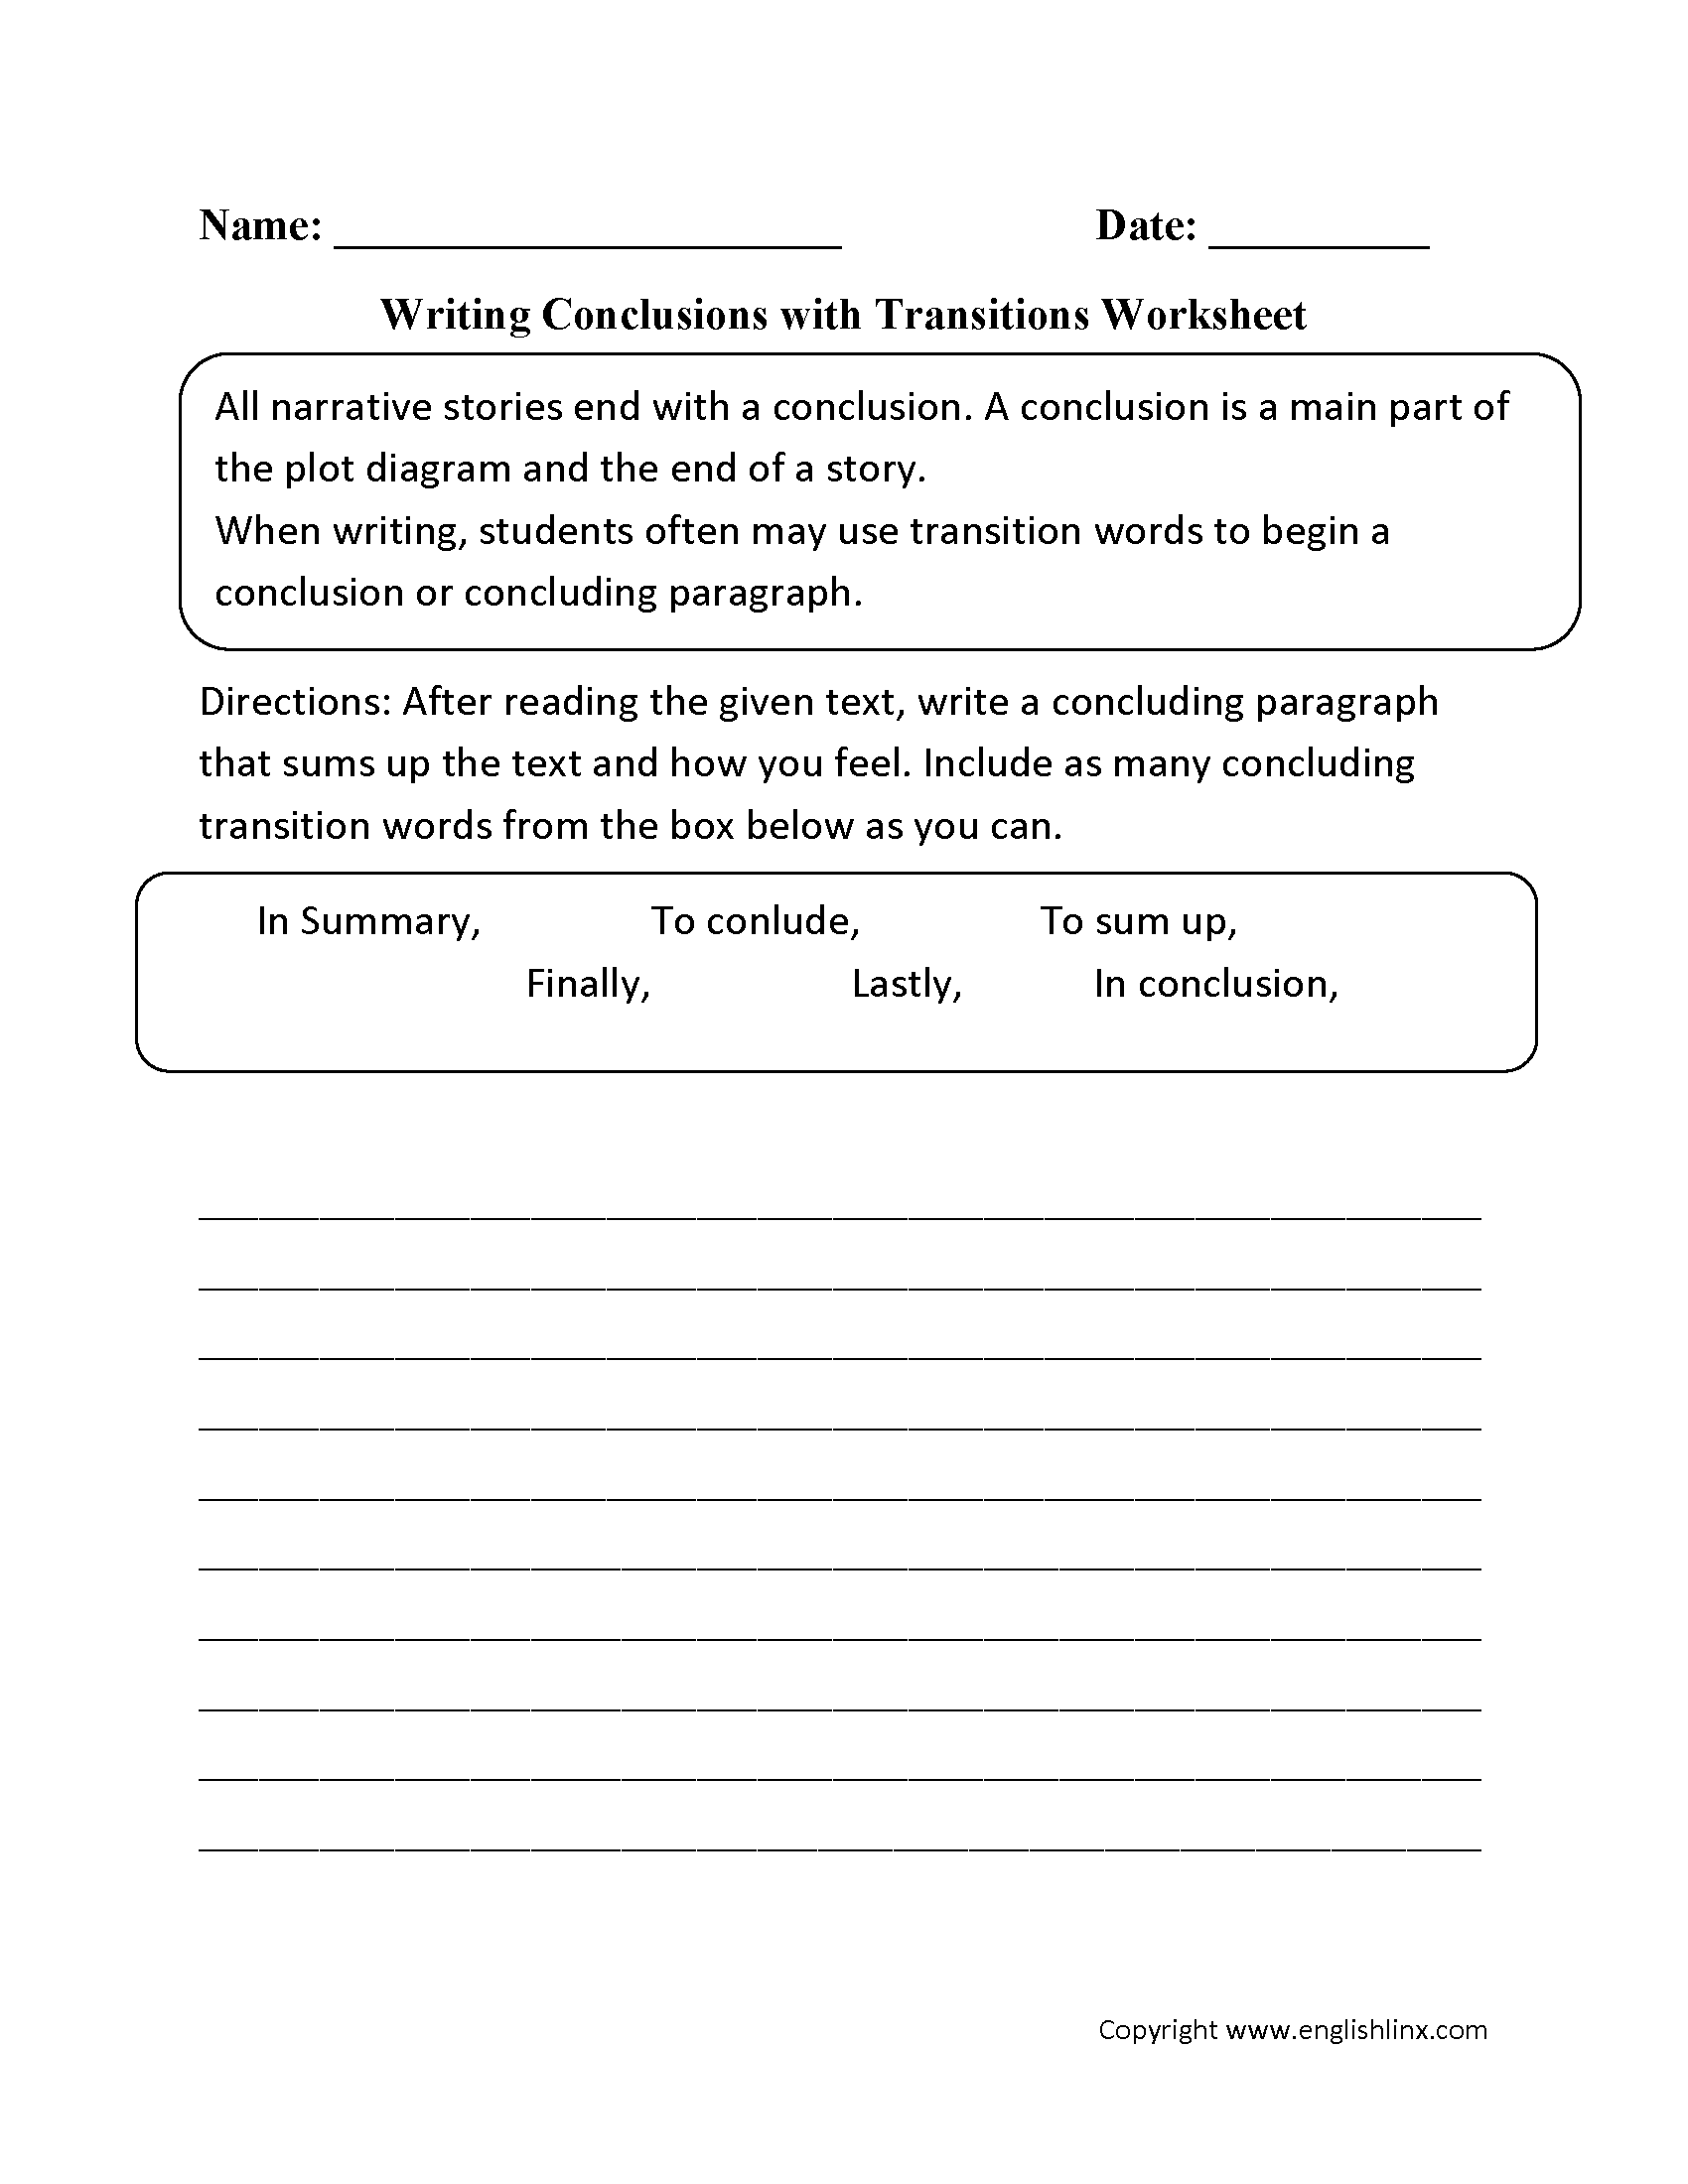 worksheet Transition Words Worksheet writing conclusions worksheets with transitions worksheets